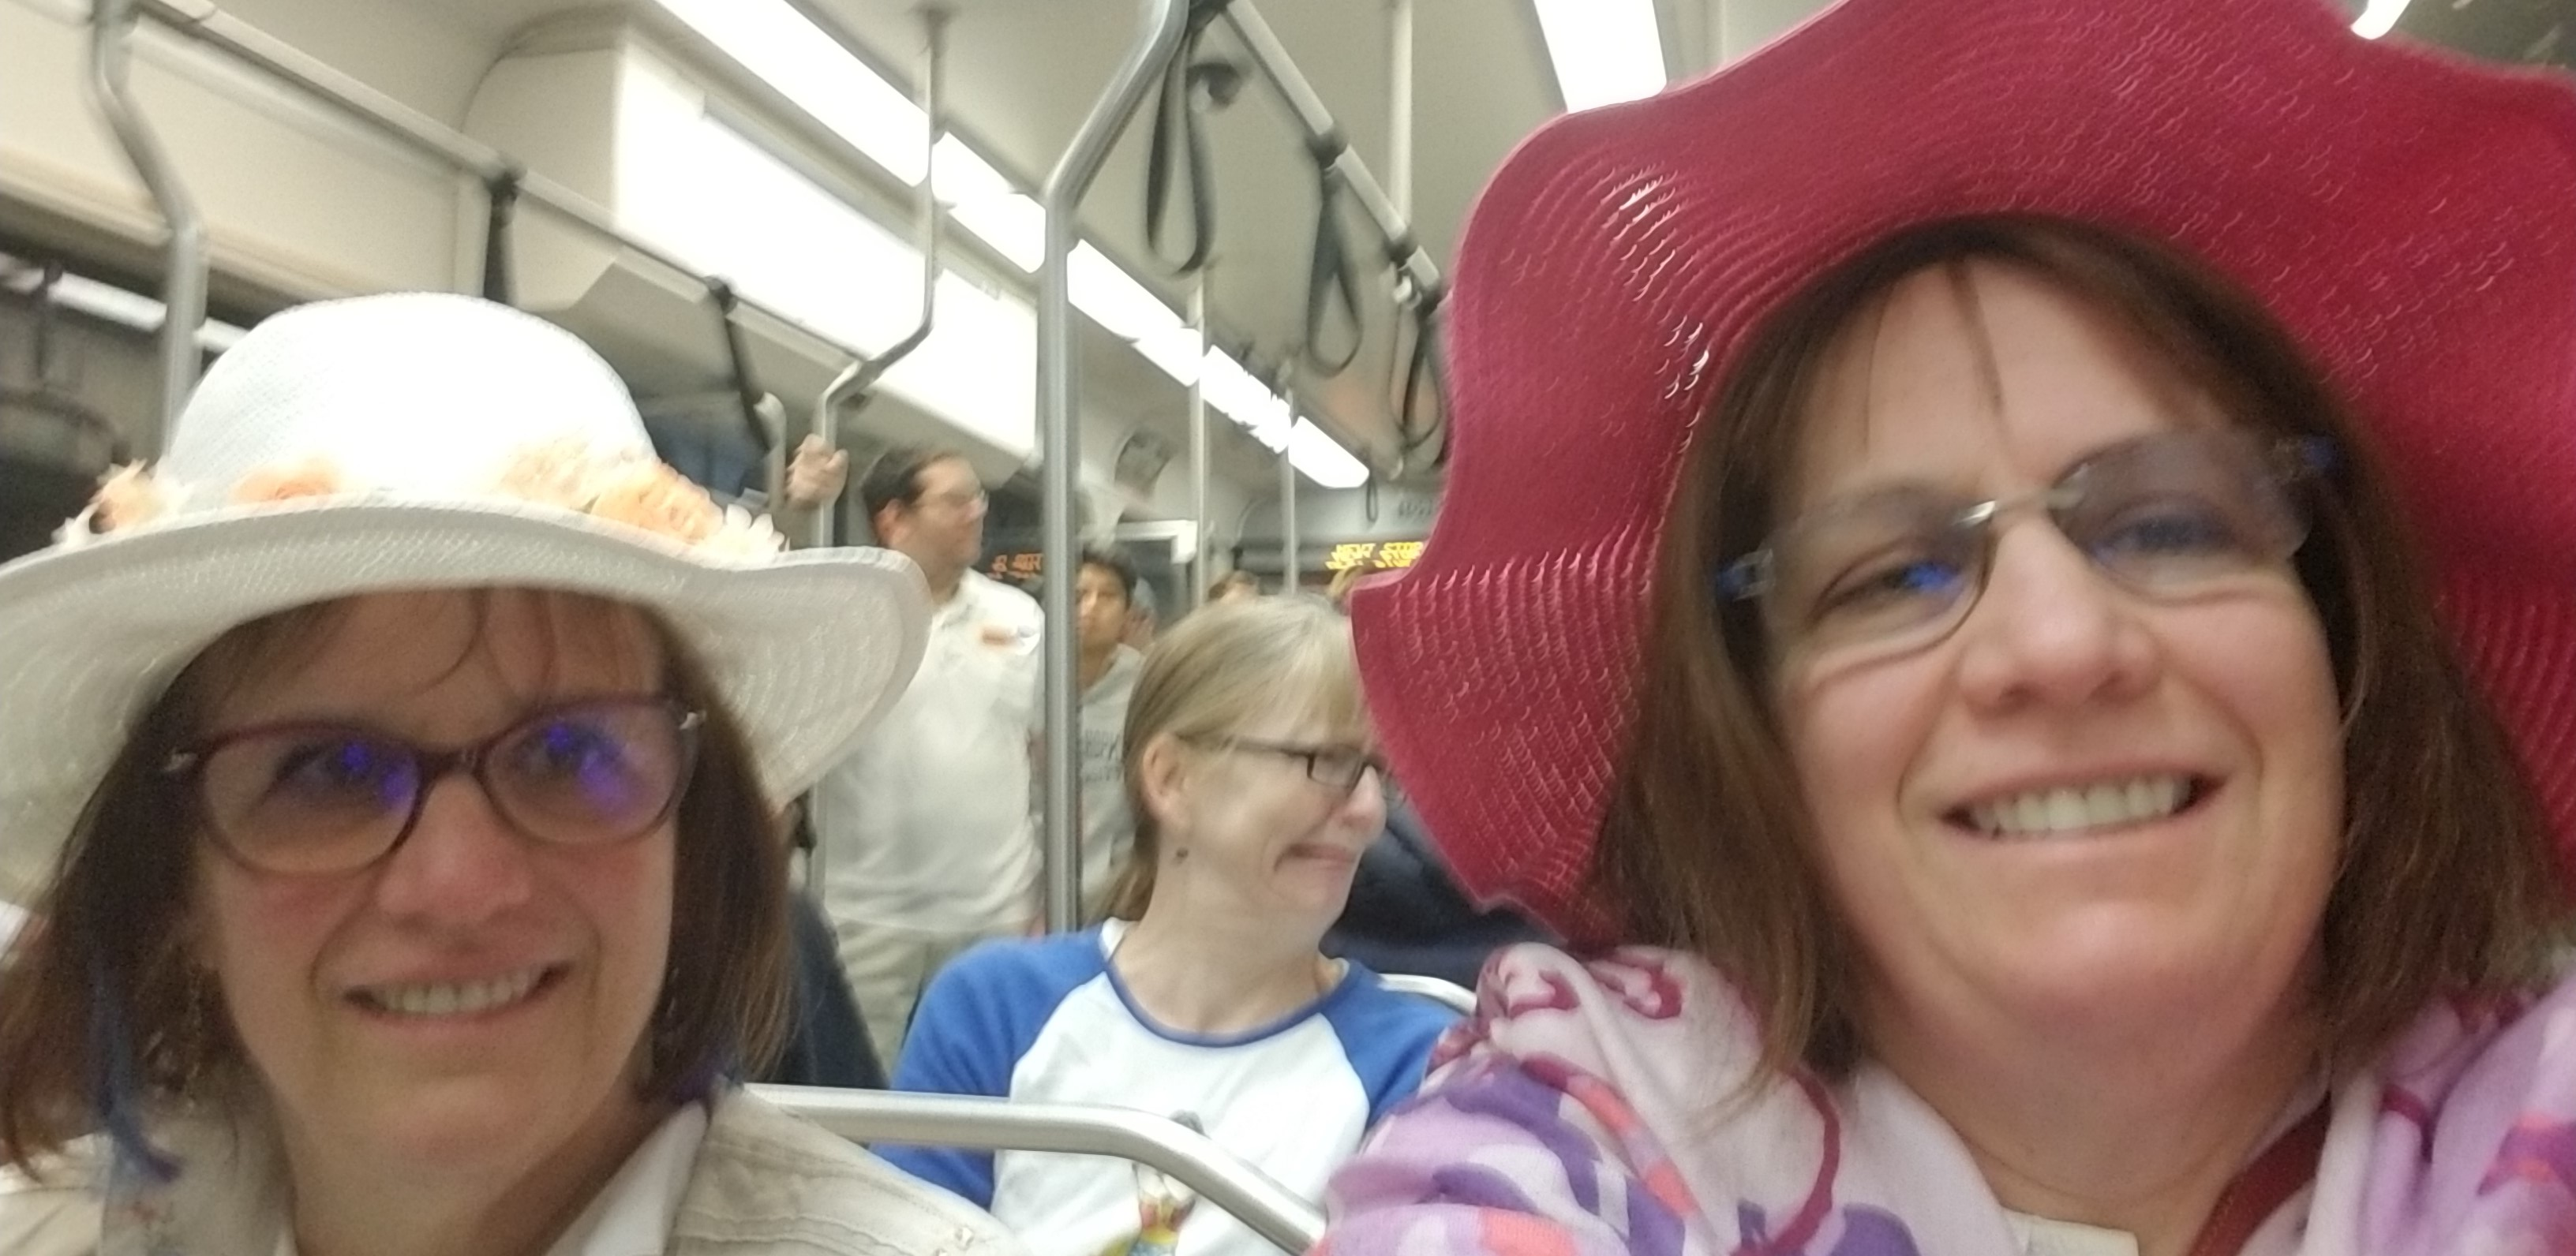 picture of My selfie of my twin sister and myself on the Seattle Light Rail heading to the #BringFamiliesTogetherMarch at Angle Lake south of SeaTac, WA. We are sitting on the train. My sister in the white hat is on the left and I'm on the right wearing a fushia-colored hat.